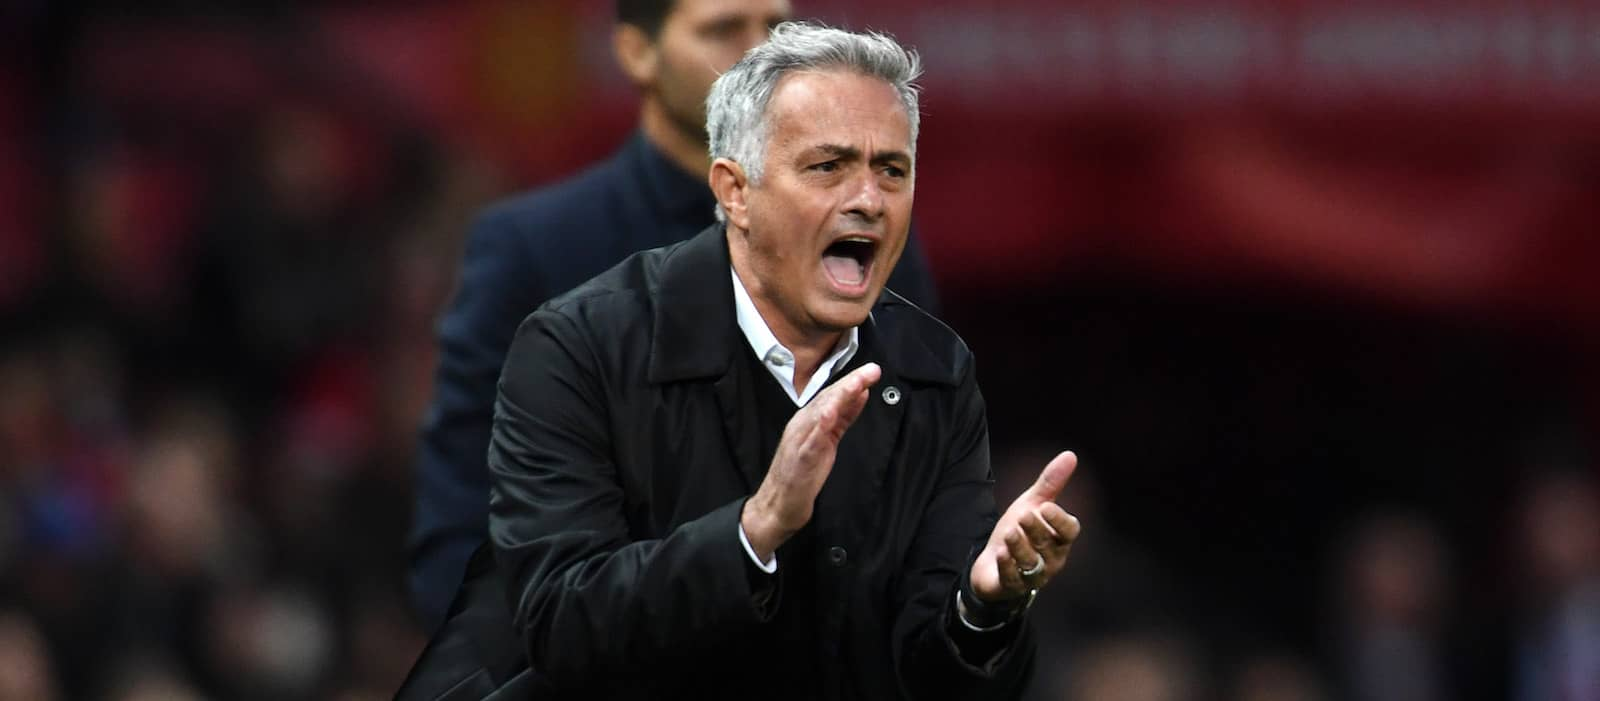 Jose Mourinho: We hope to play like we did against Tottenham